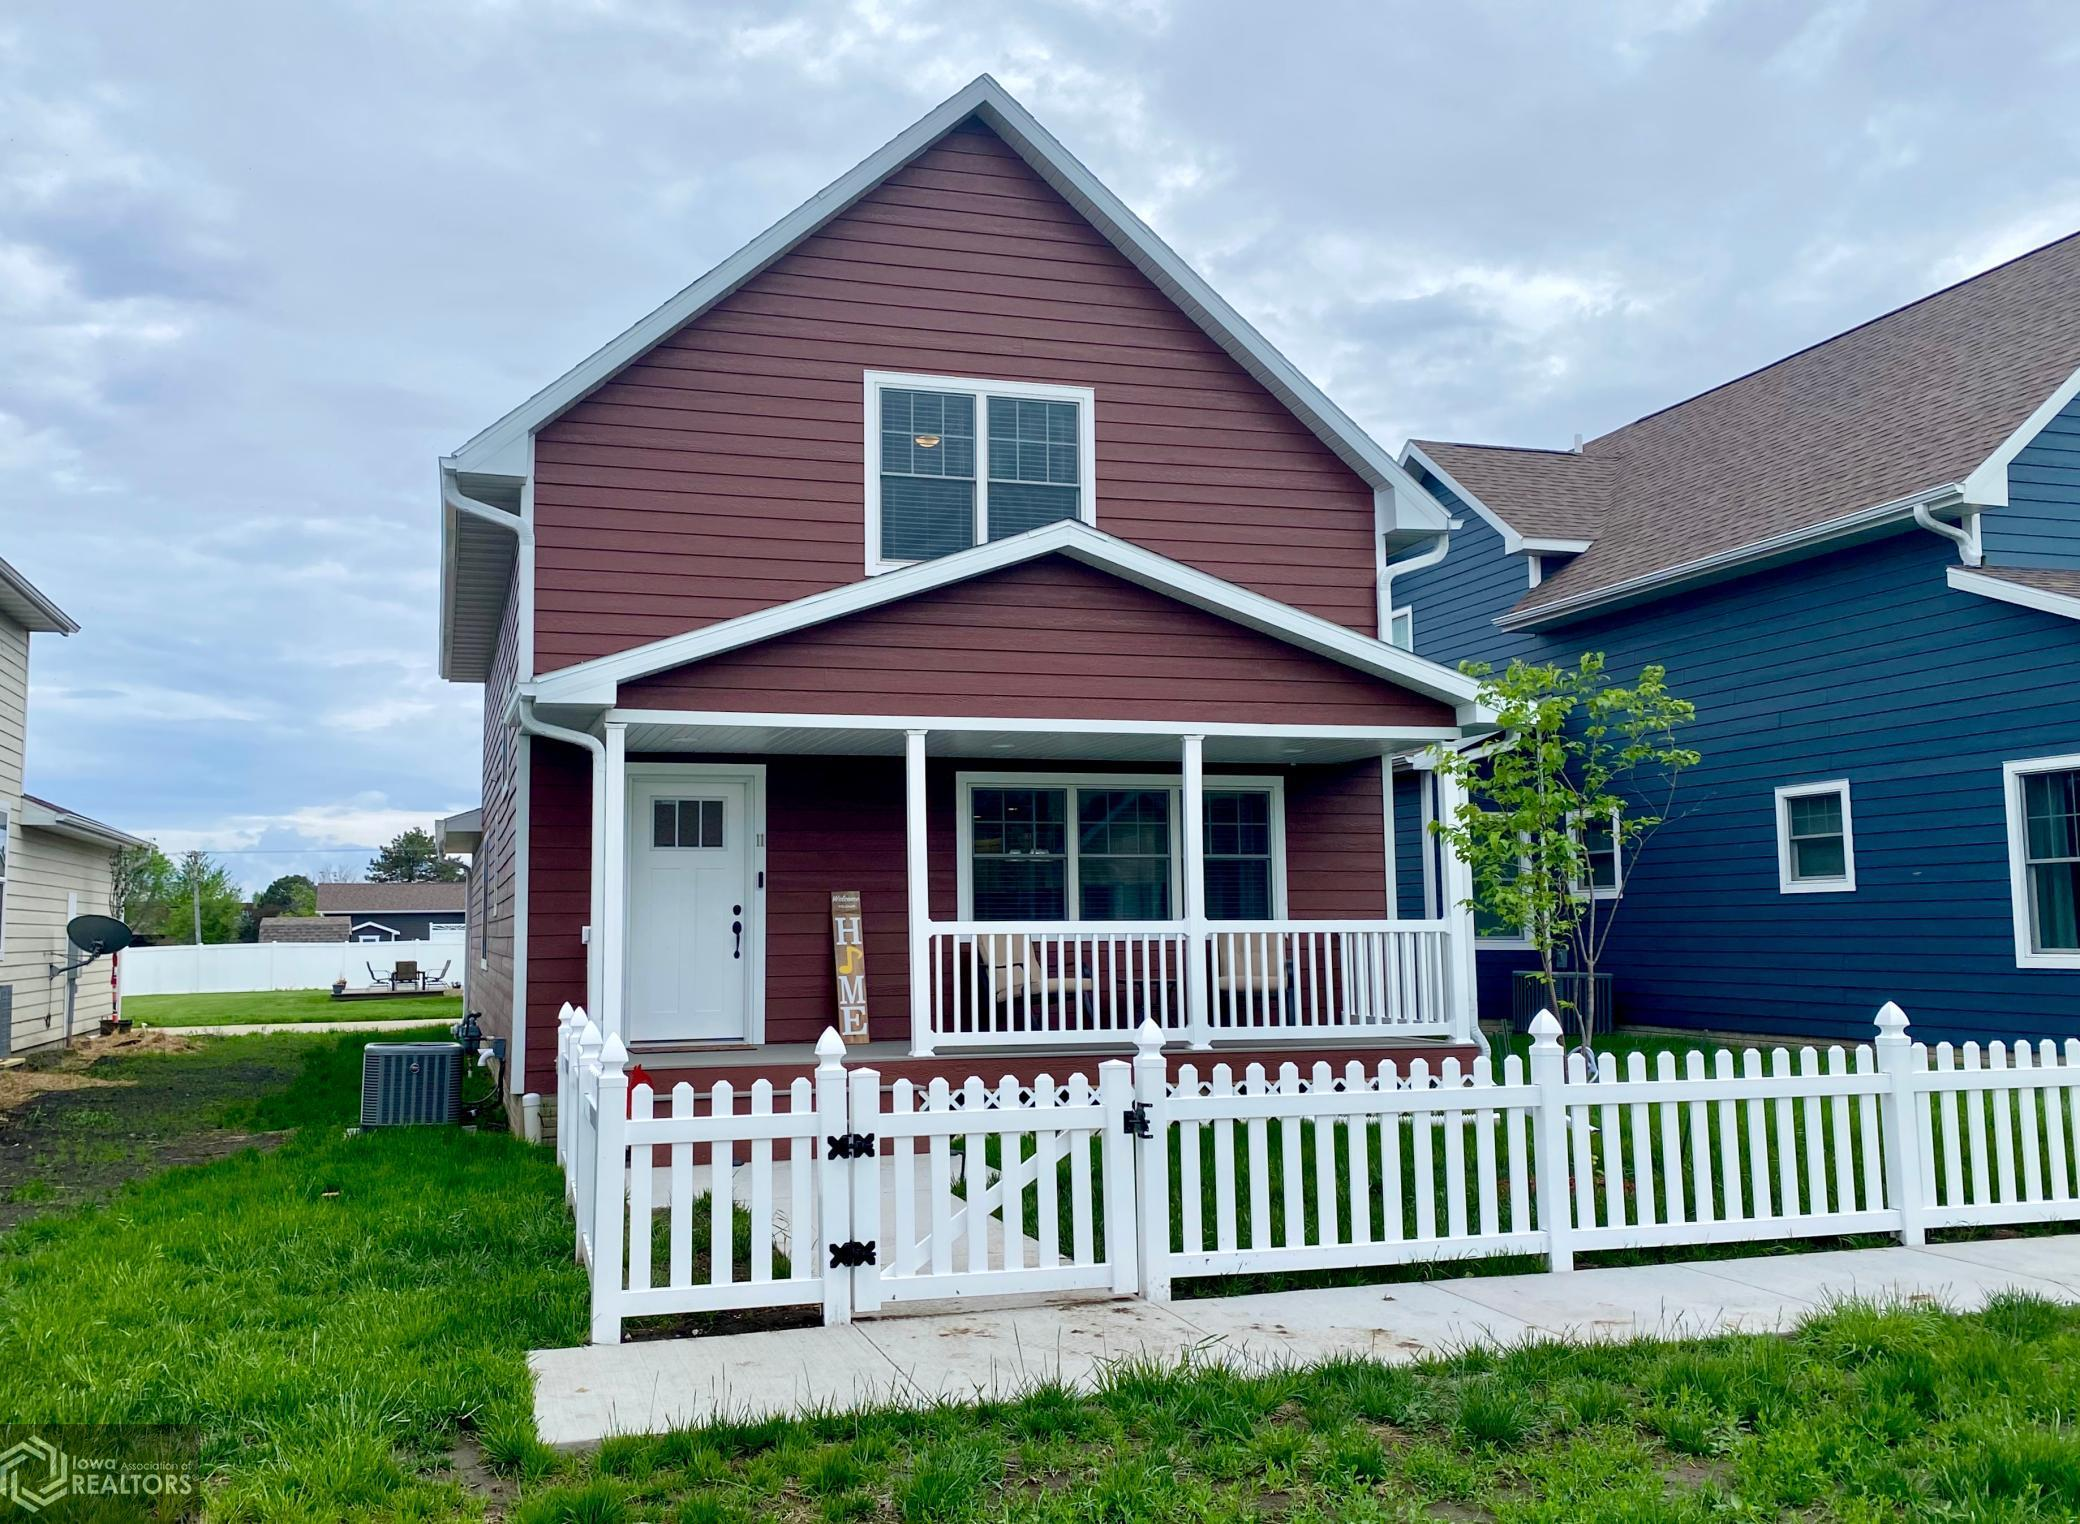 11 Garden Cottage, Grinnell, Iowa 50112-2302, 3 Bedrooms Bedrooms, ,1 BathroomBathrooms,Single Family,For Sale,Garden Cottage,5761801